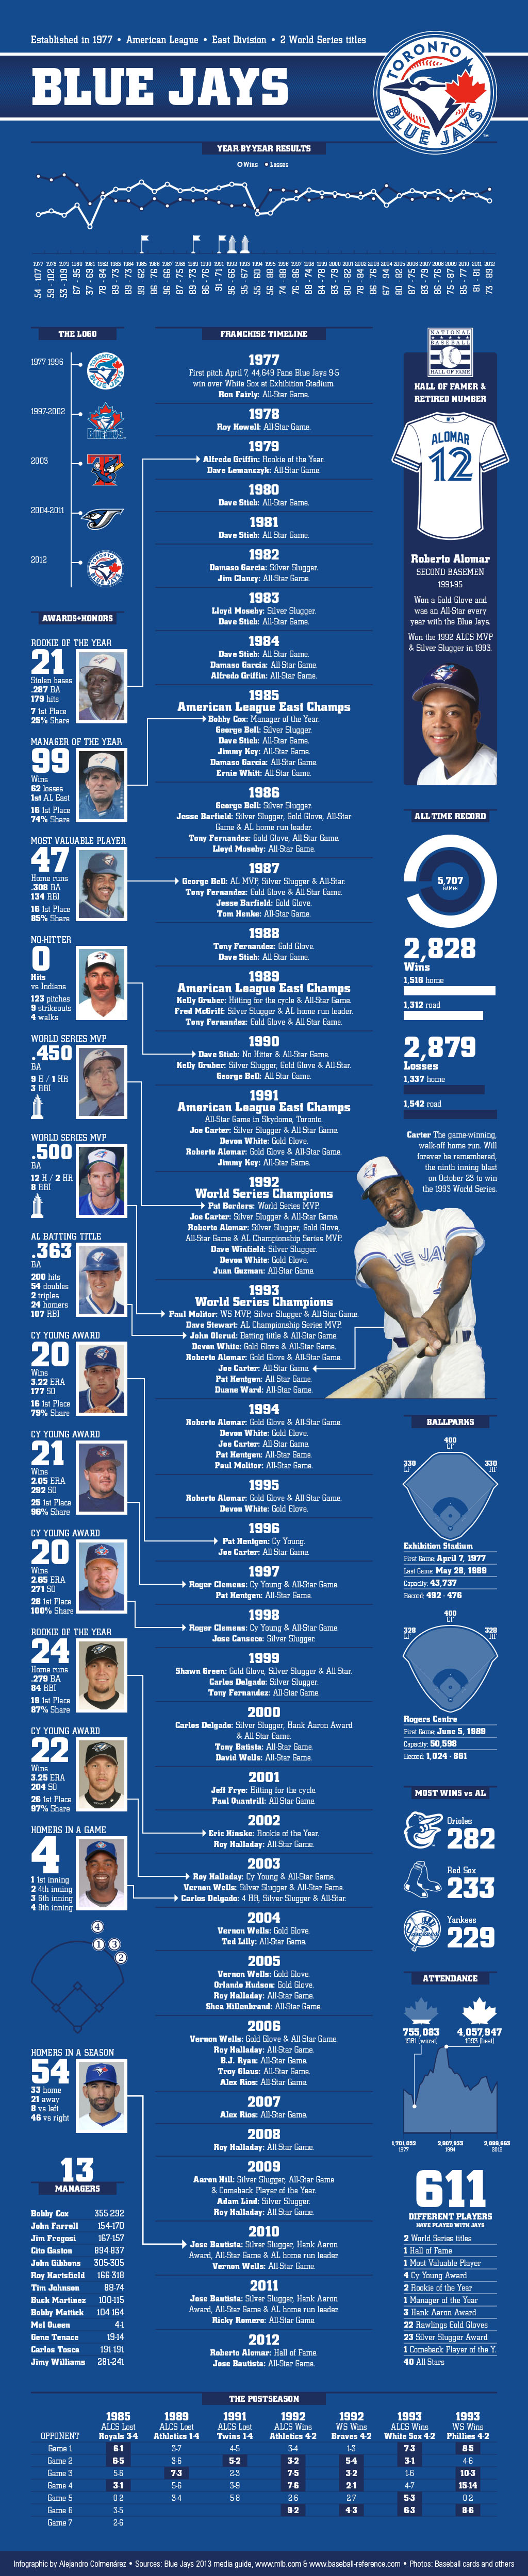 The Toronto Blue Jays History Players Records Awards And Honors An More In This Infographic Toronto Blue Jays Blue Jays Baseball Blue Jays